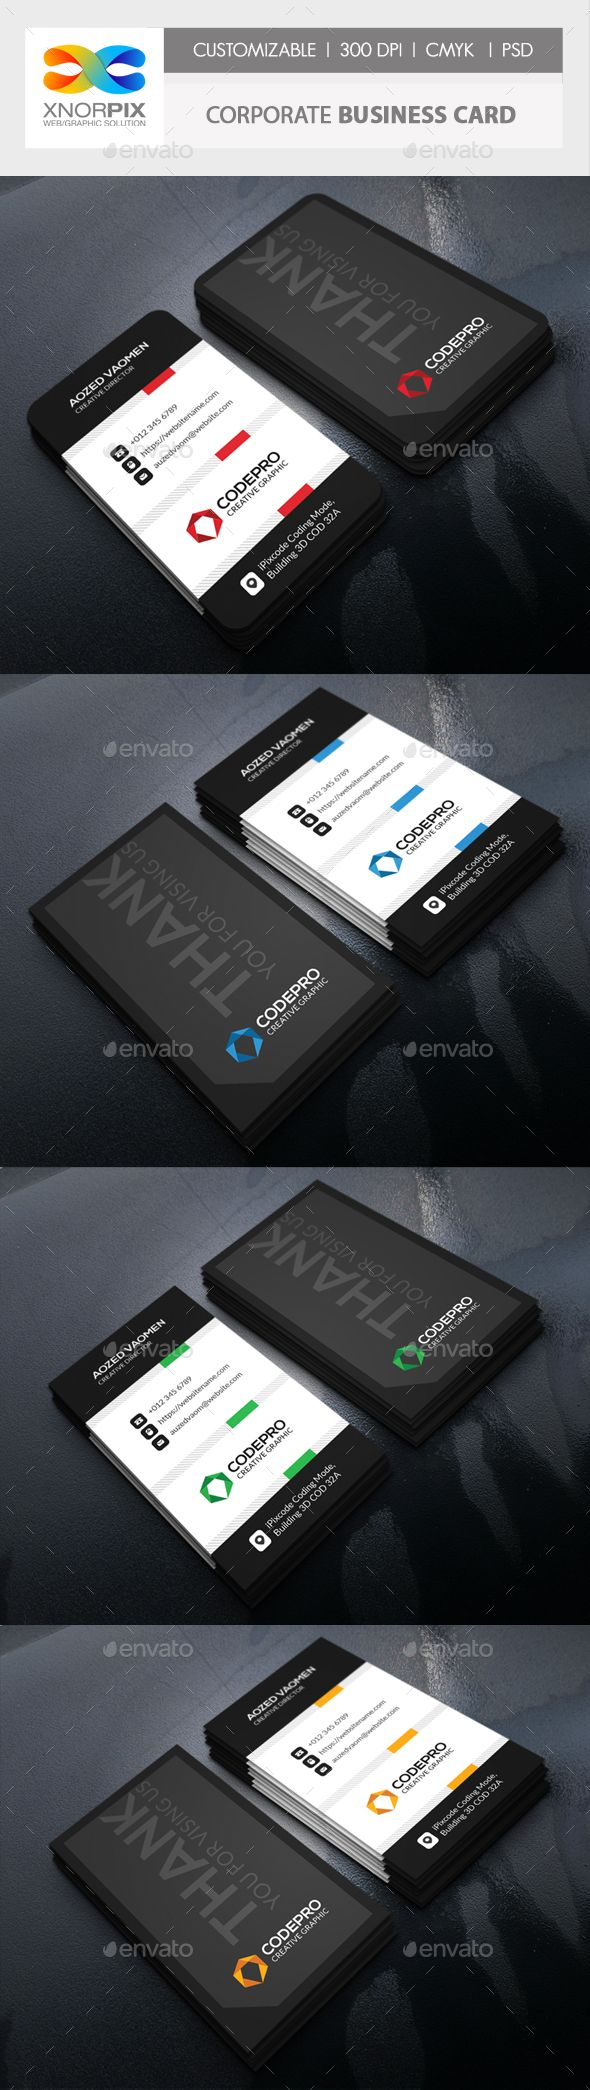 #Corporate Business Card - Corporate #Business #Cards Download here: https://graphicriver.net/item/corporate-business-card/20293959?ref=alena994